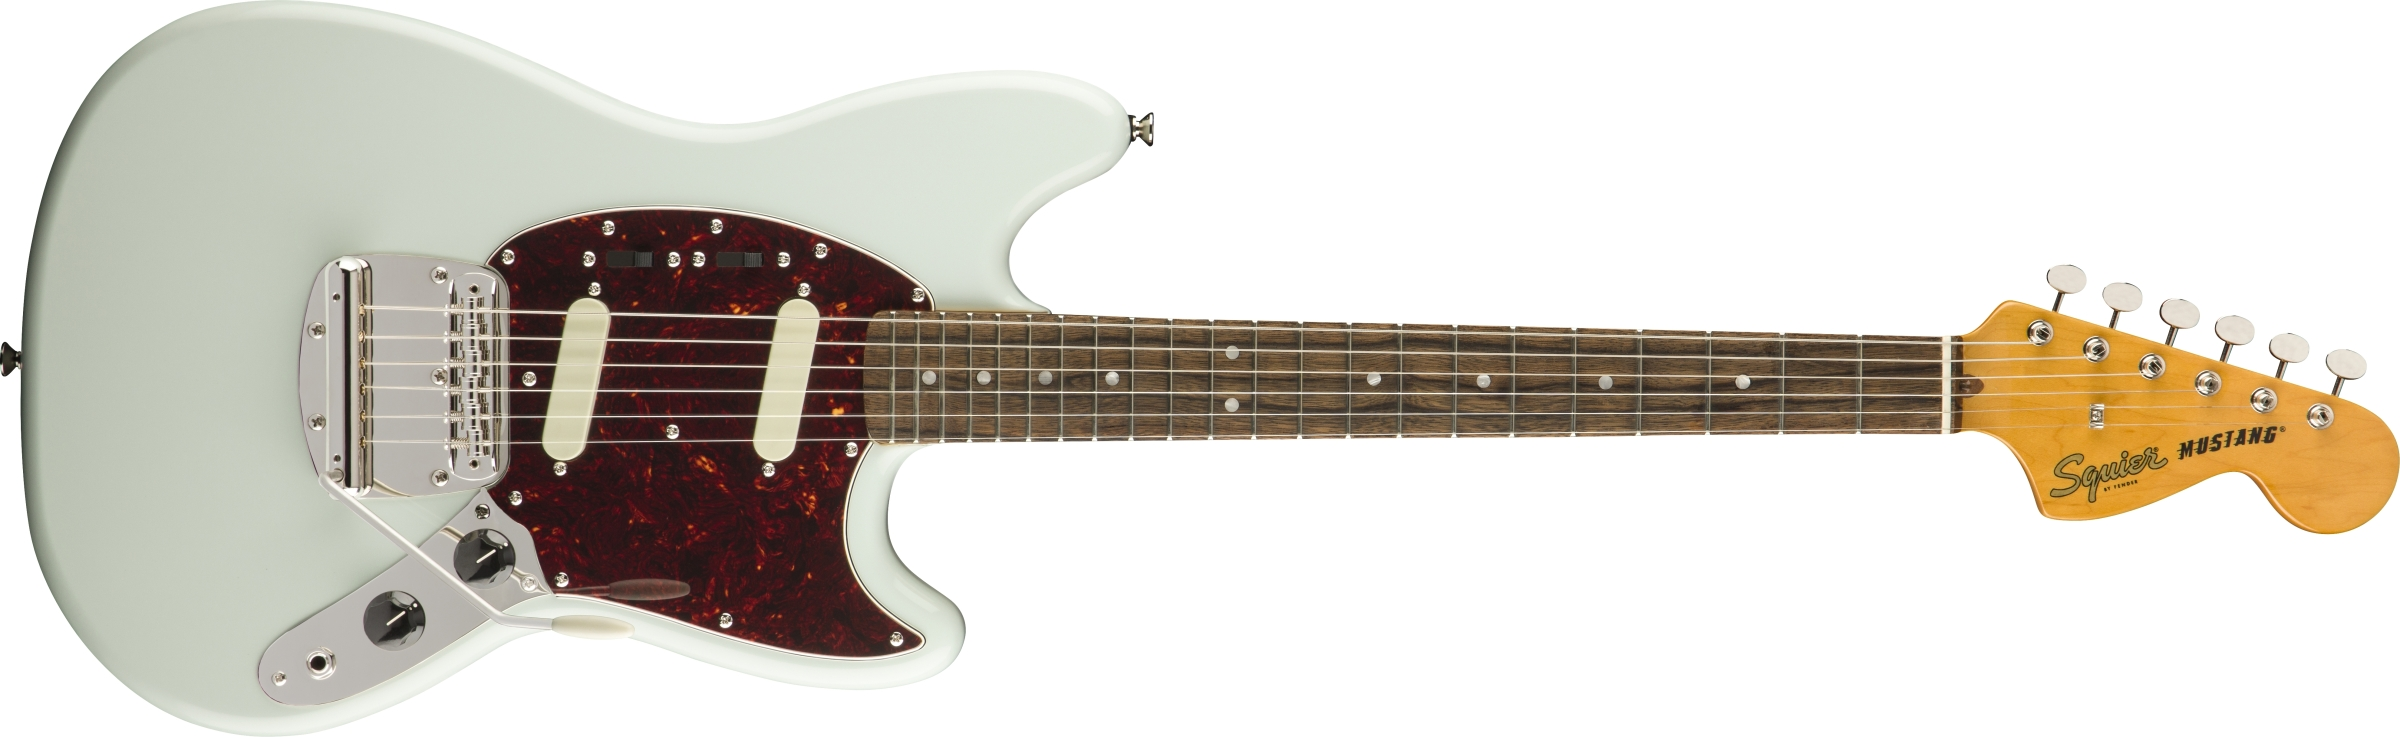 Classic Vibe 60s Mustang 174 Squier Electric Guitars